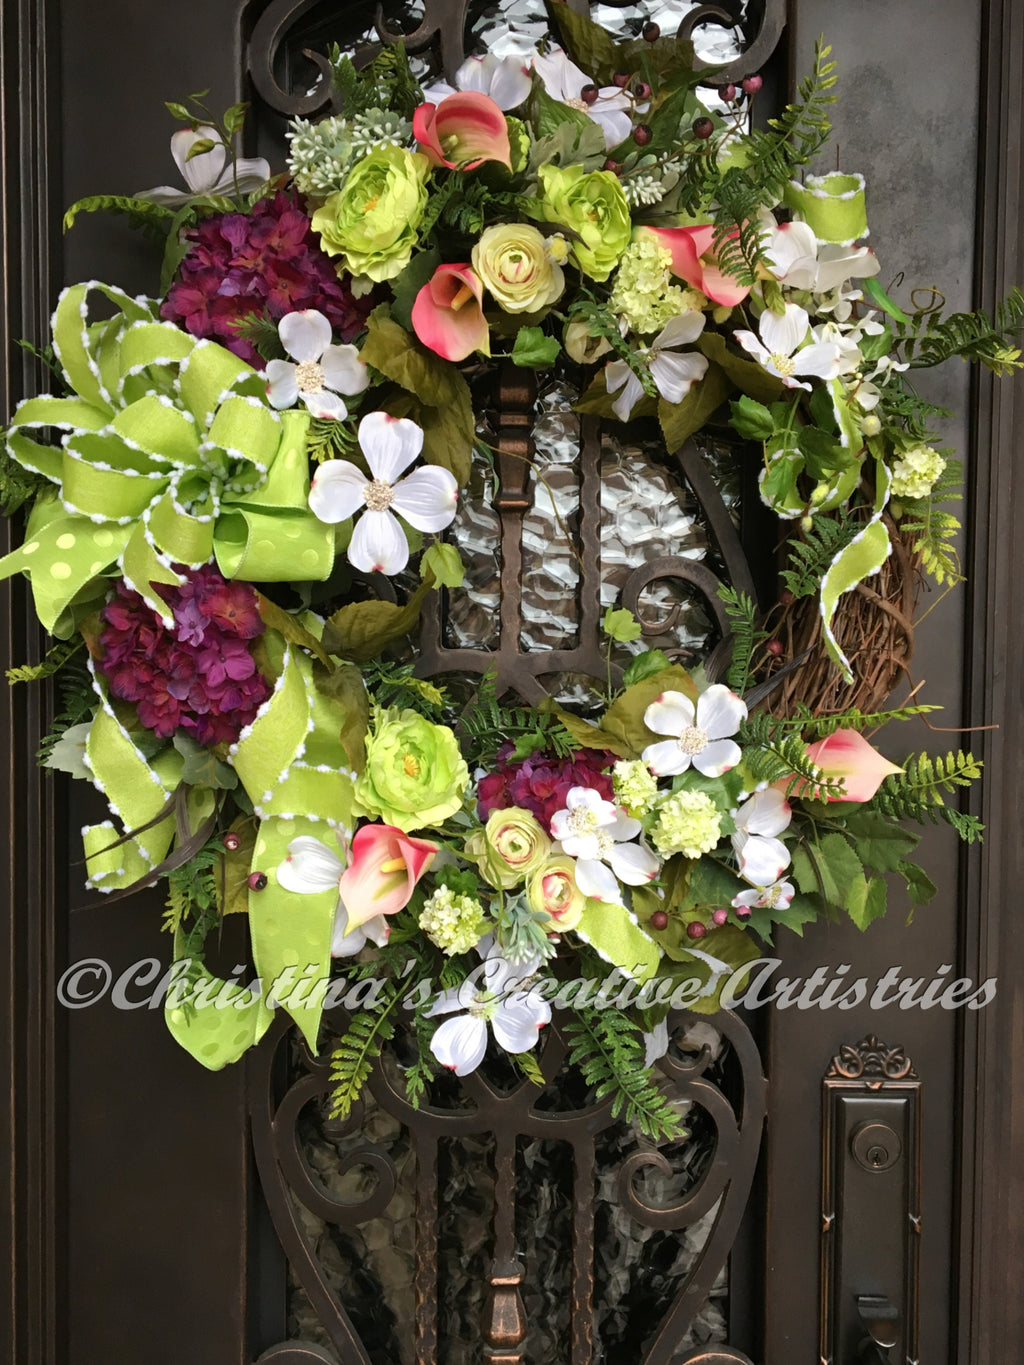 Christina's Creative Artistries' Glorious Spring product image. A gathering of silk magenta hydrangeas, pink calla lilies, lime green ranunculuses, white dogwood, ferns and lime green bow on a grapevine frame.